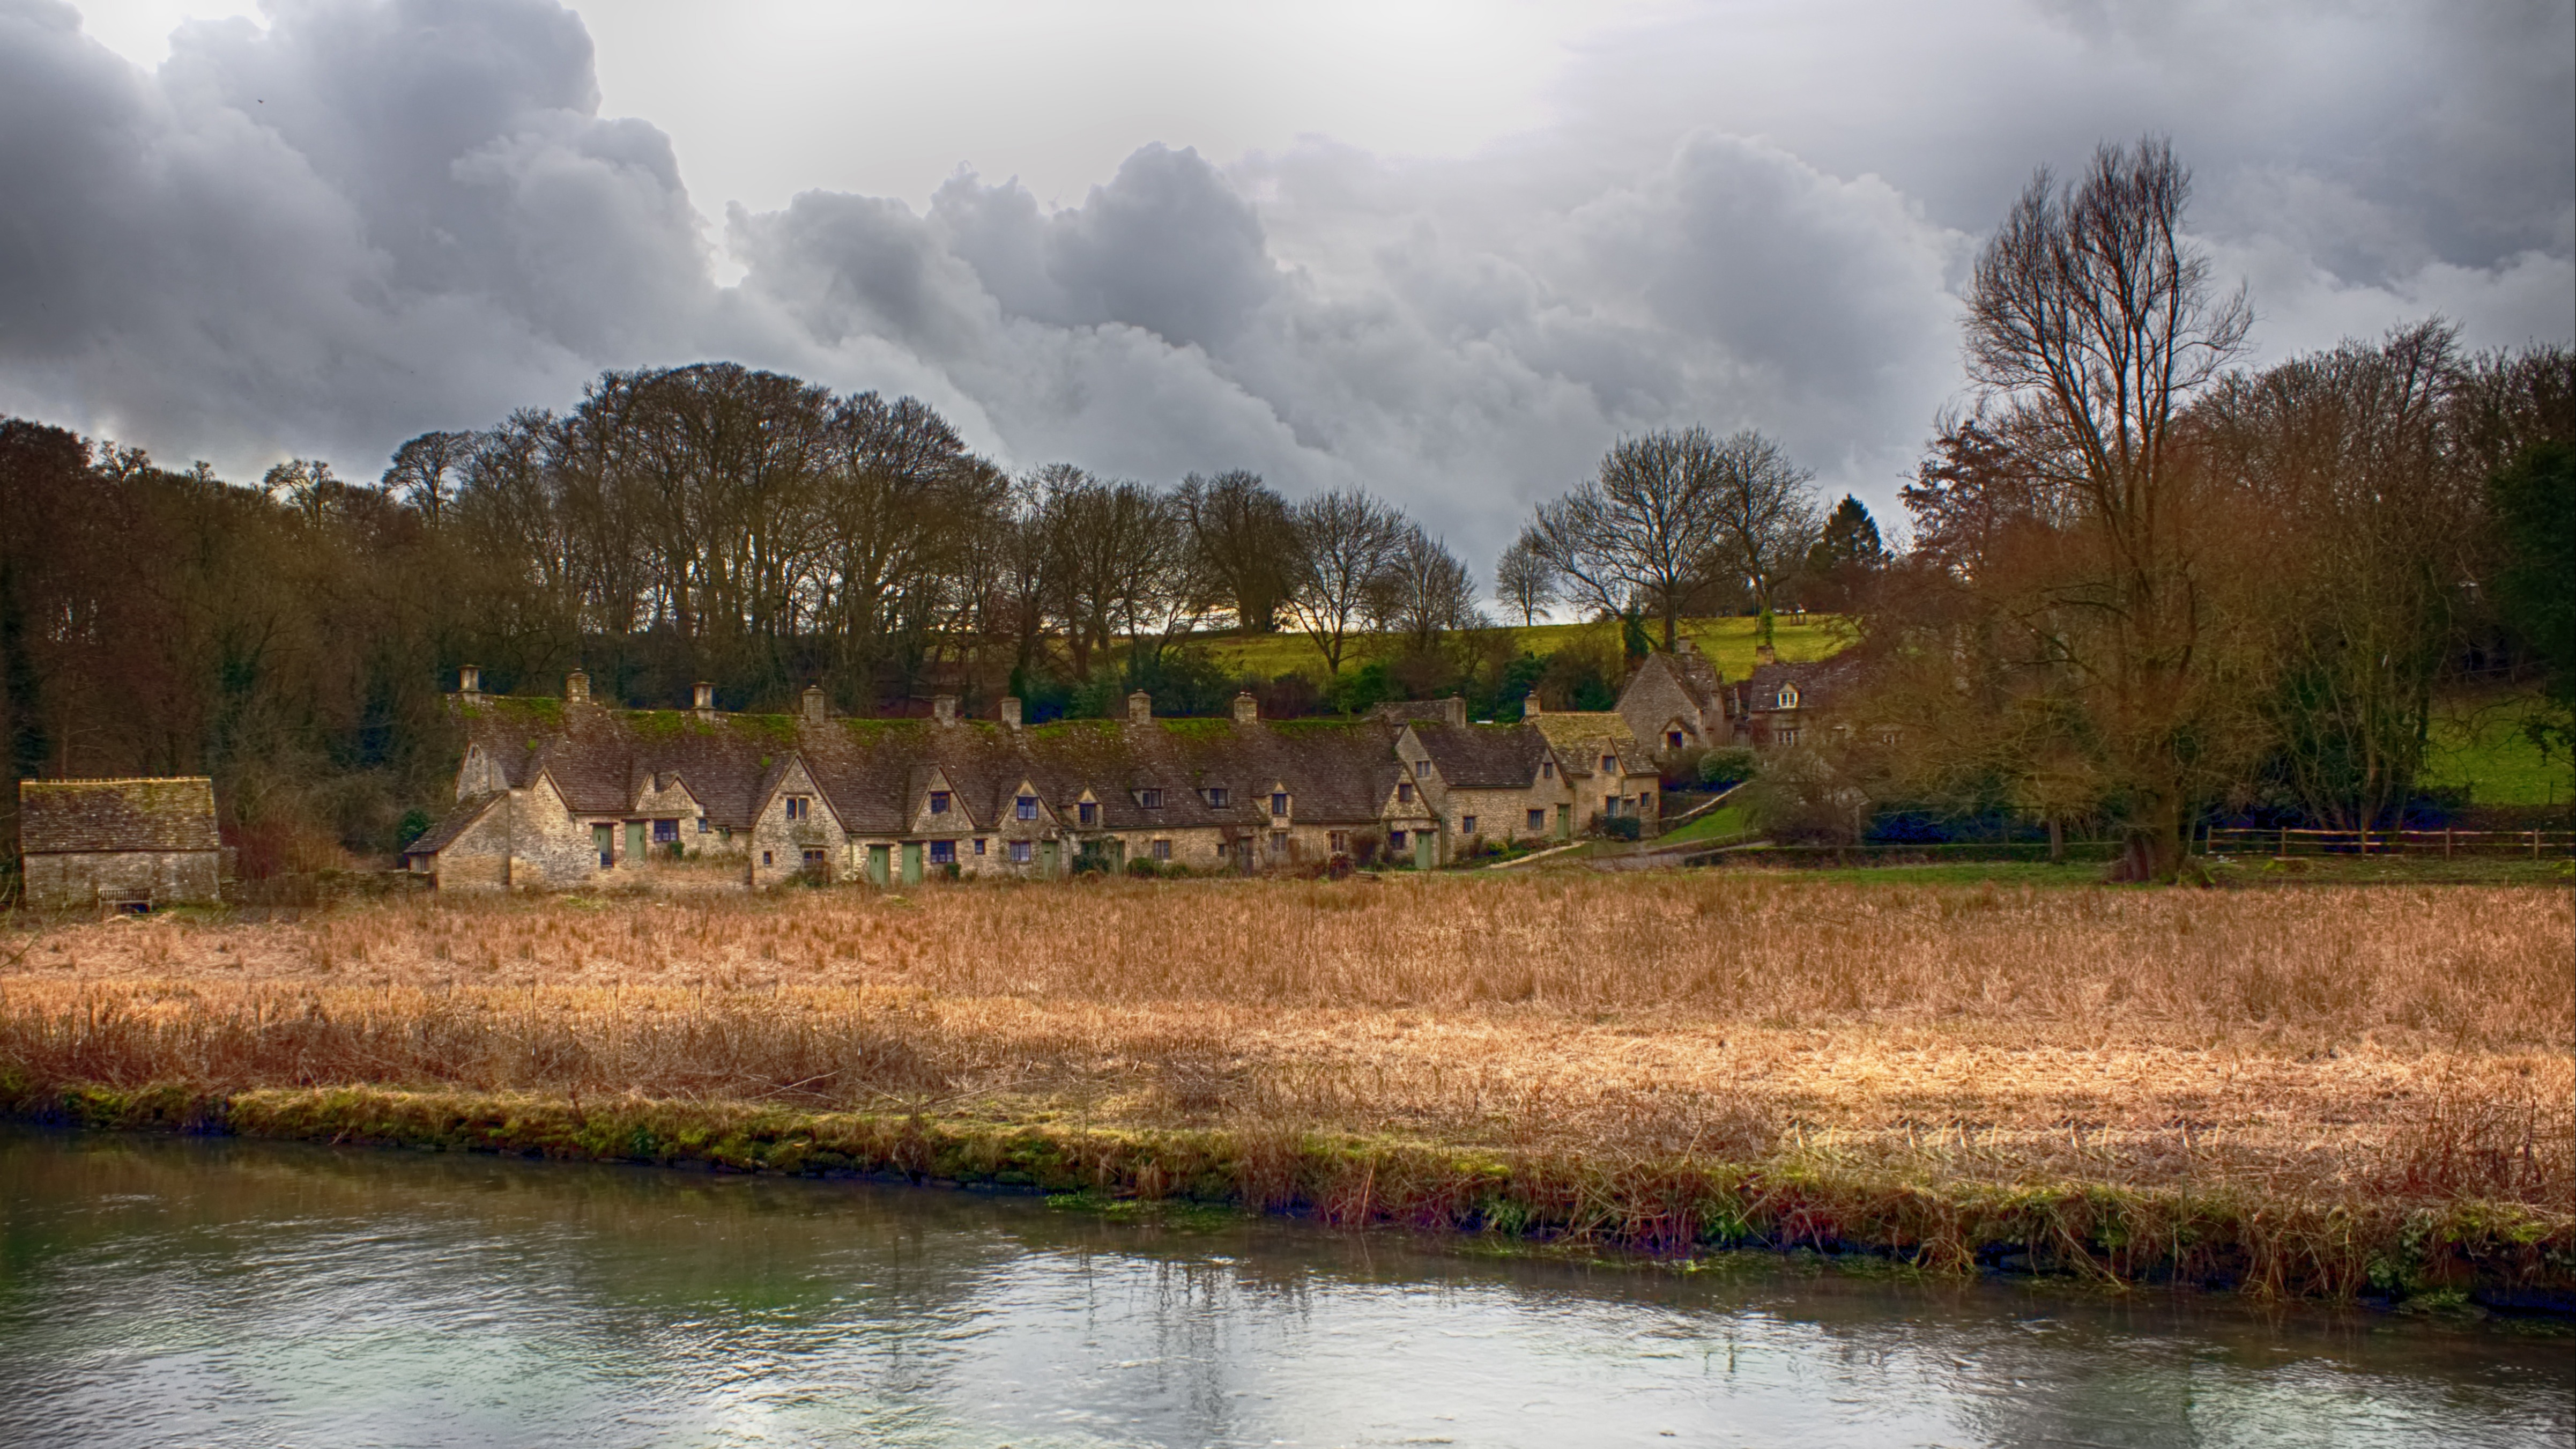 Groovy Find Cute Cottages To Rent In Cotswolds Homeaway Interior Design Ideas Gentotryabchikinfo